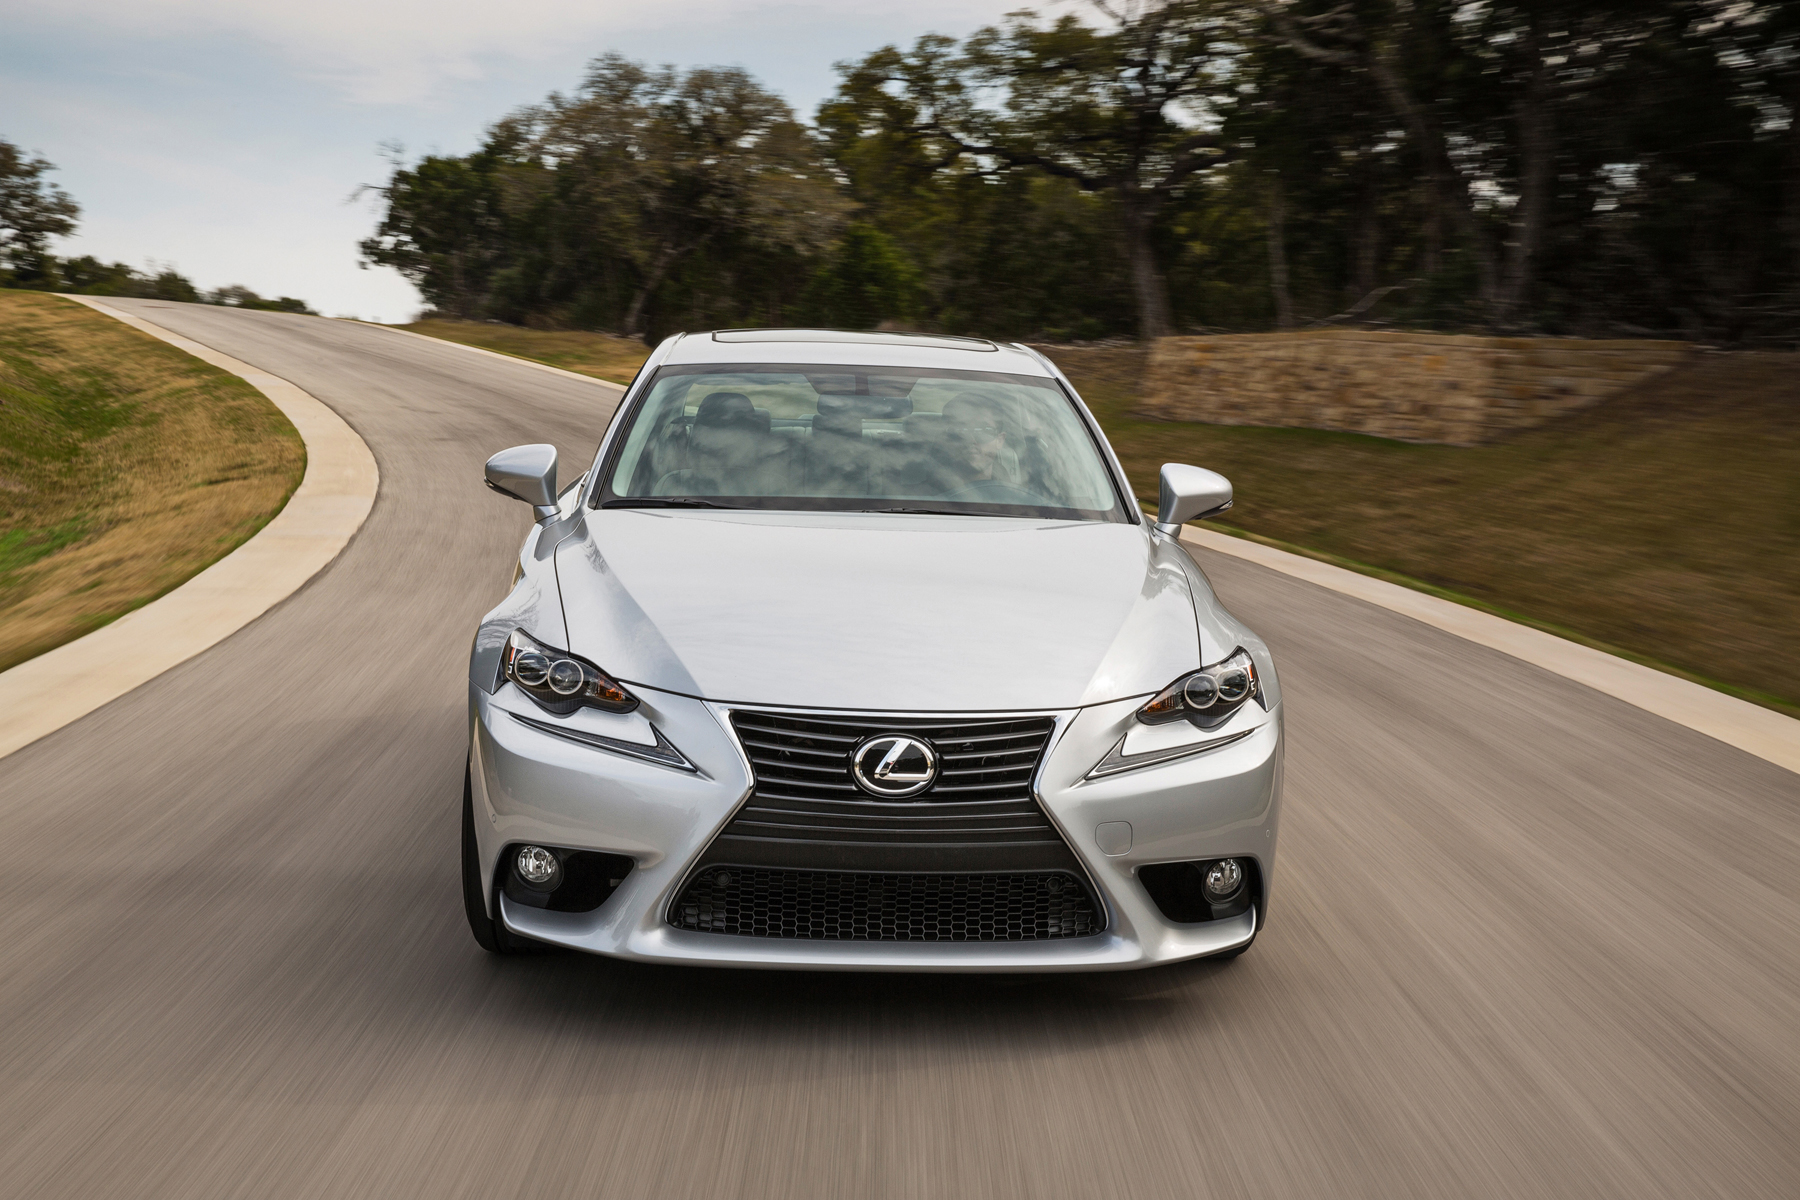 2014 lexus is 250 new car reviews grassroots motorsports for Lexus is 250 motor